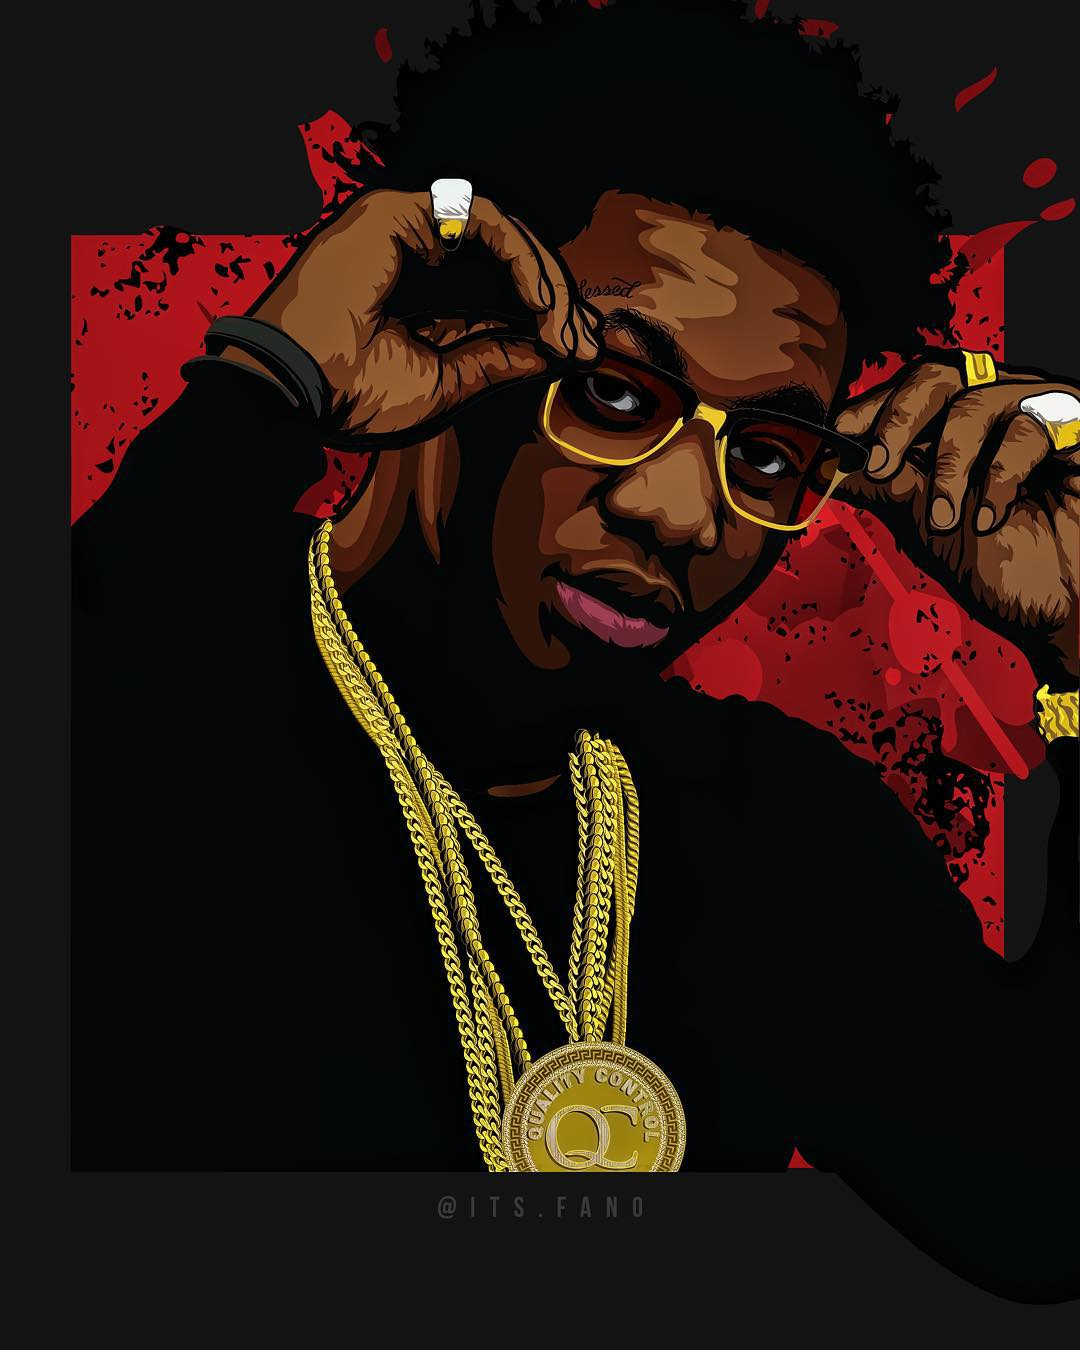 offset migos art | Fano! | Pinterest | Dope wallpapers, Devian art ...